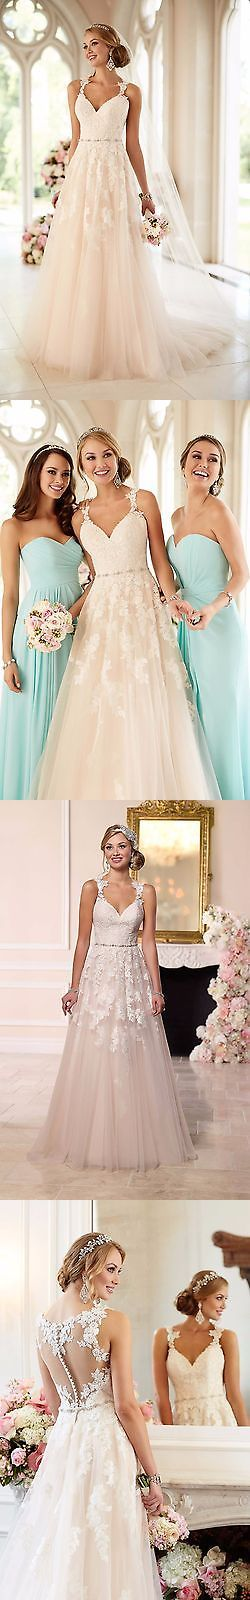 Wedding Dresses: 2016 White Ivory Tulle Bridal Gown Wedding Dress Custom Size 4-6-8-10-12-16-18+ -> BUY IT NOW ONLY: $110 on eBay!